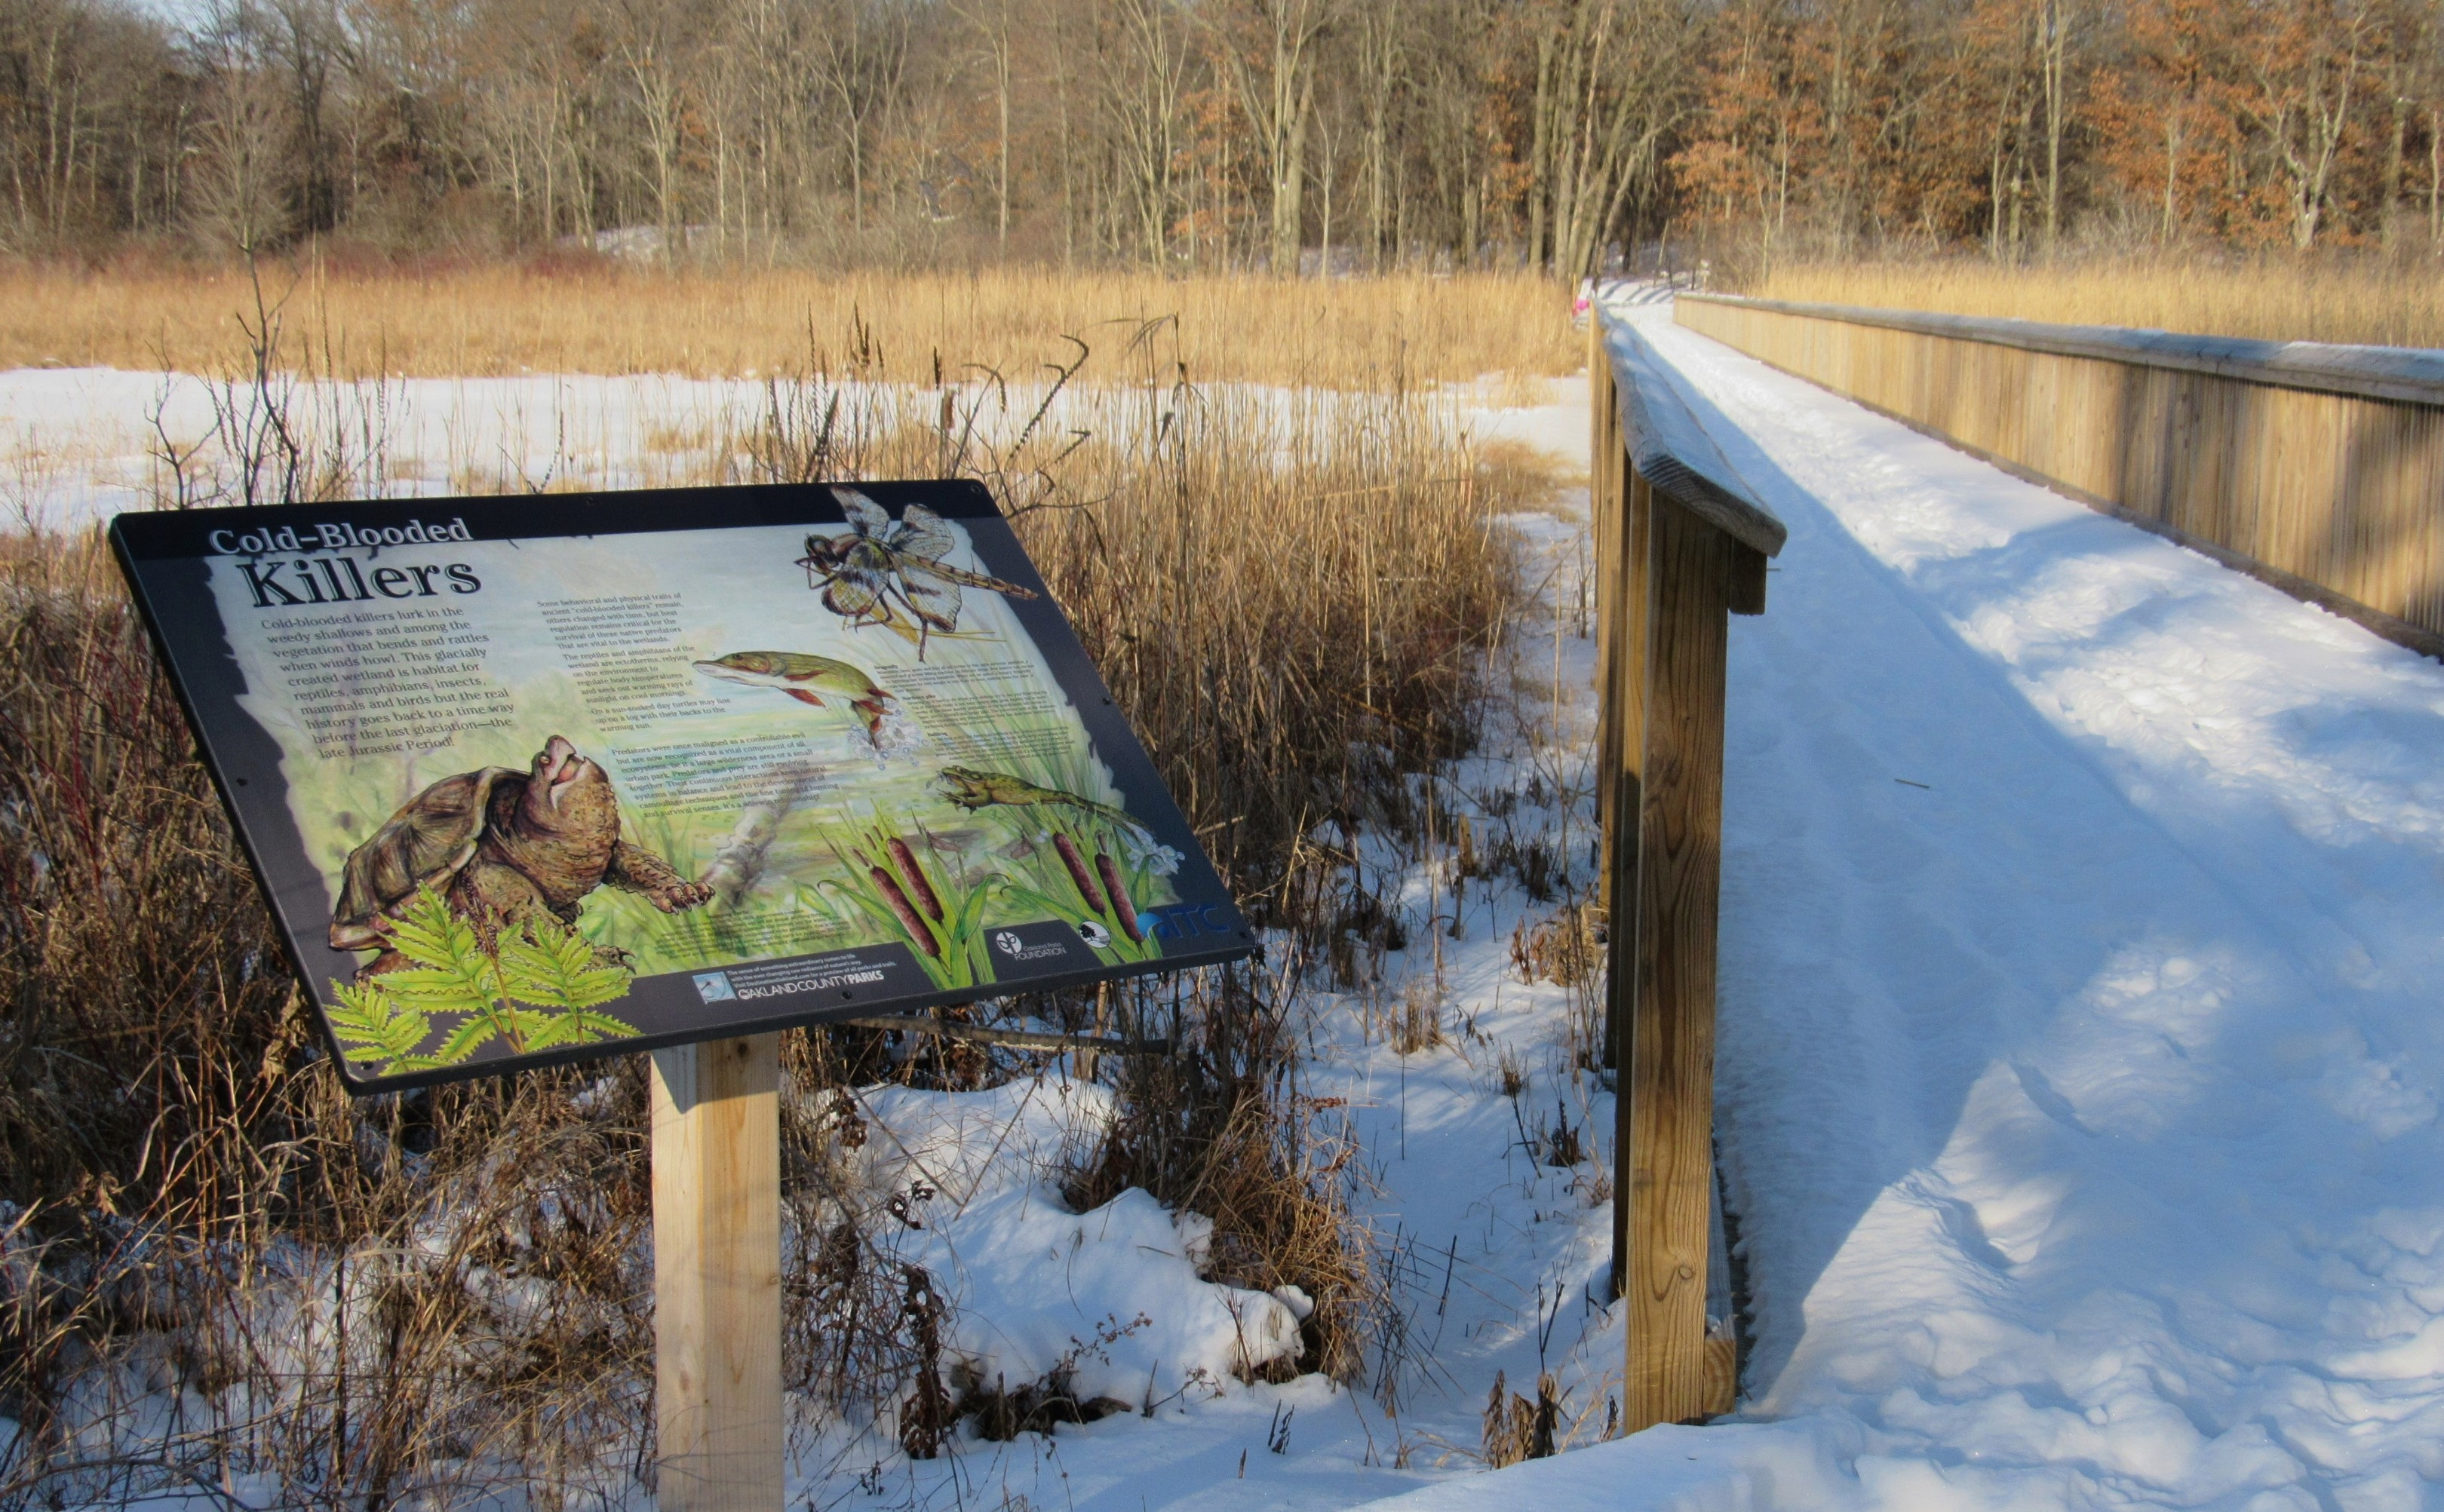 An interpretive sign next to a large boardwalk over wetland that is covered by snow.